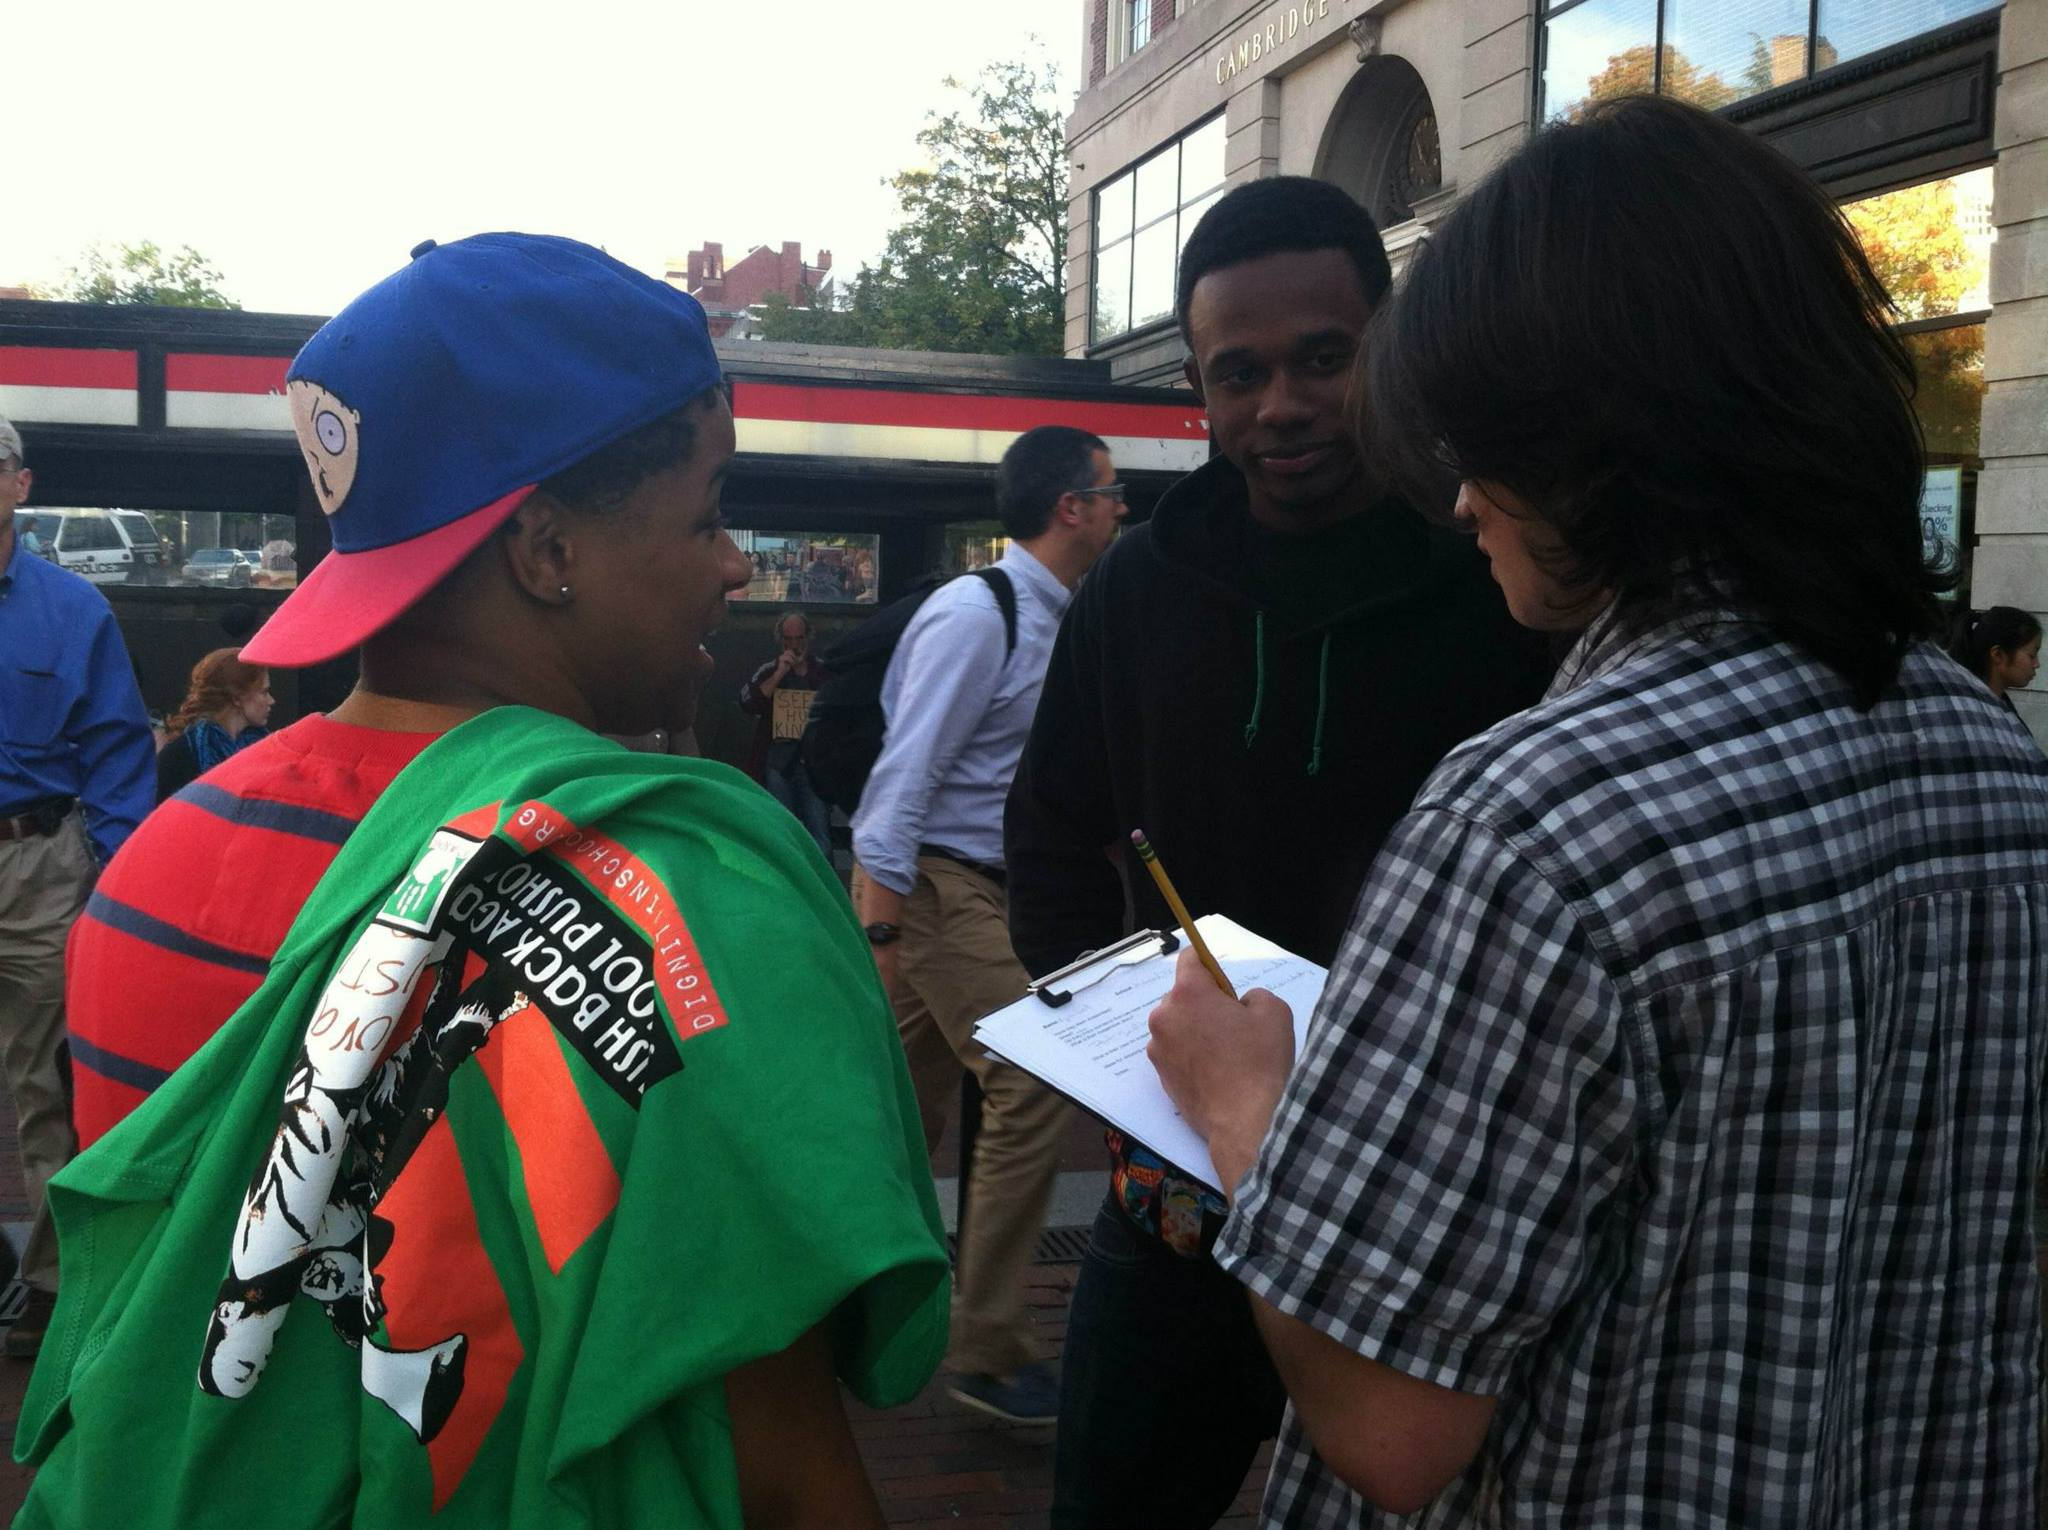 Summer Program - Internships | Boston Mobilization: Sub/Urban Justice Summer Leadership Program